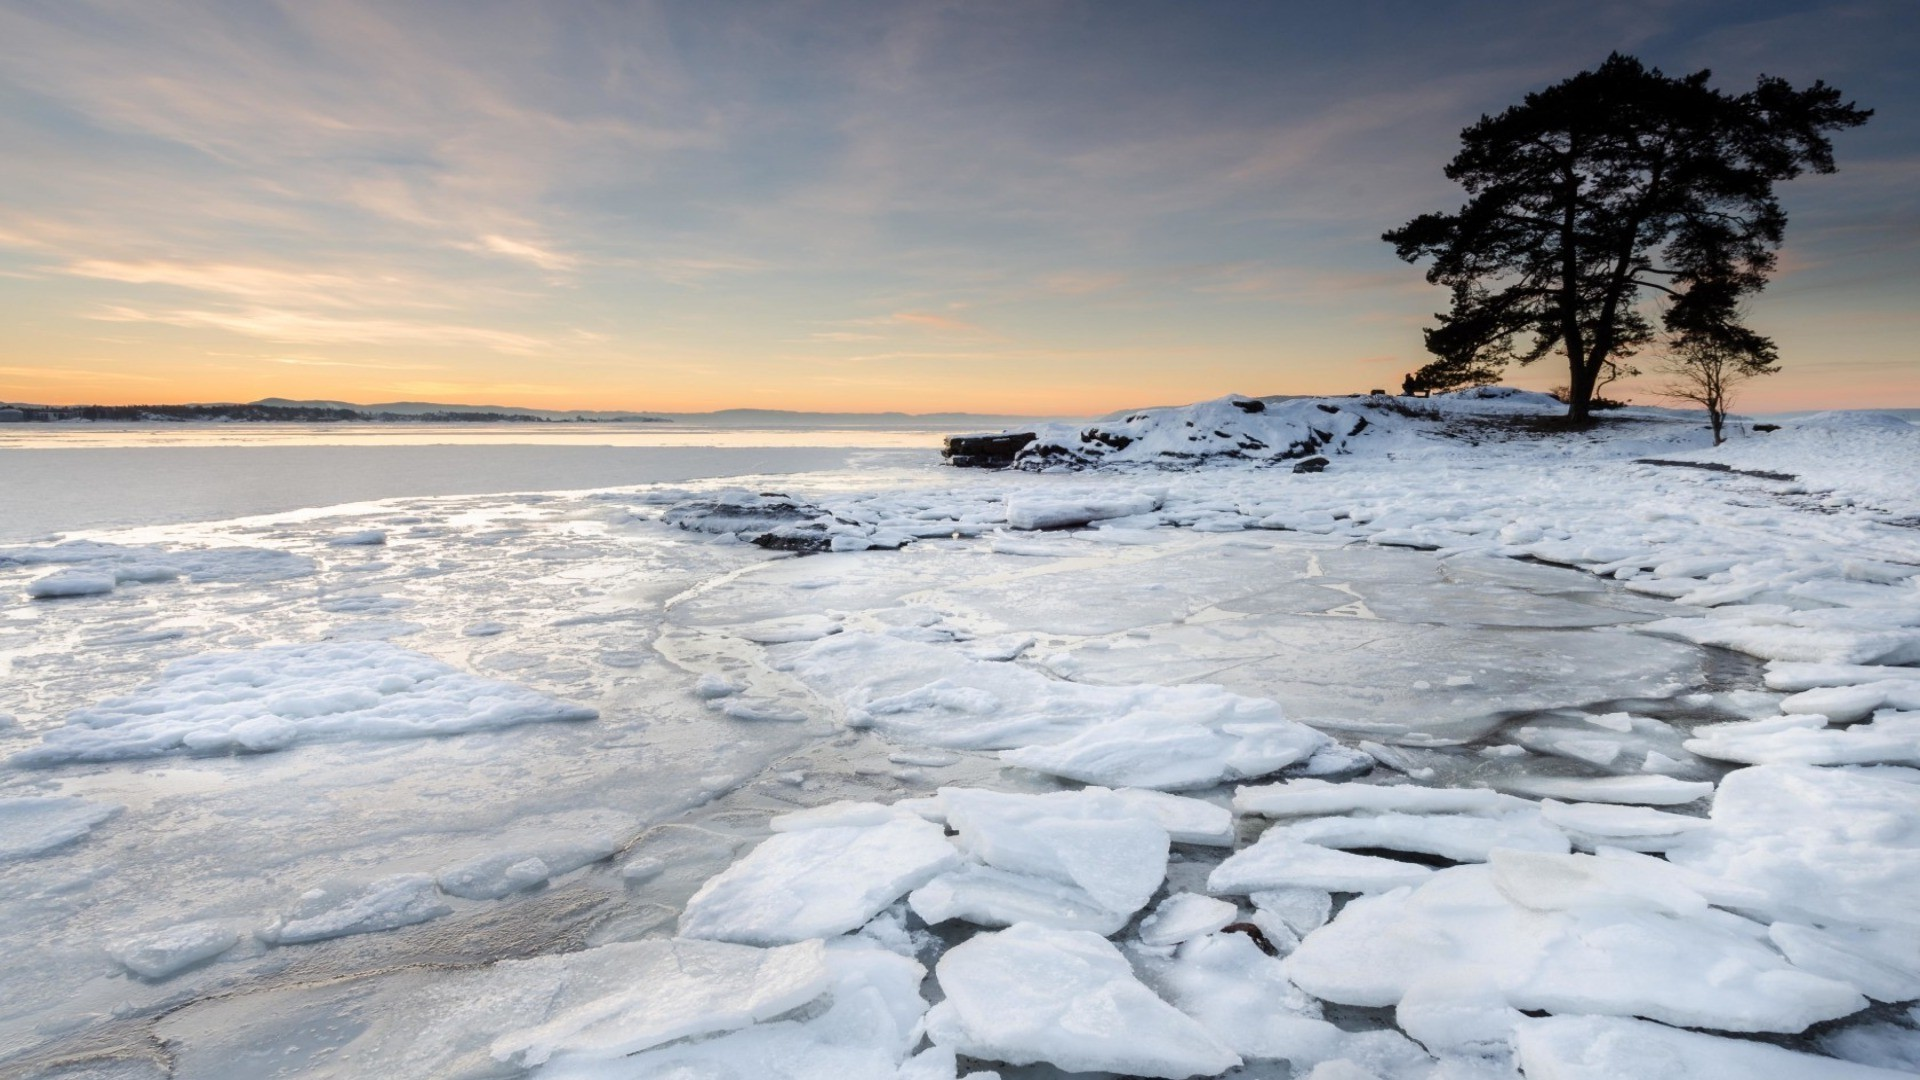 ice winter snow water nature landscape cold frost sky outdoors frozen sunset weather sea dawn ocean fair weather travel